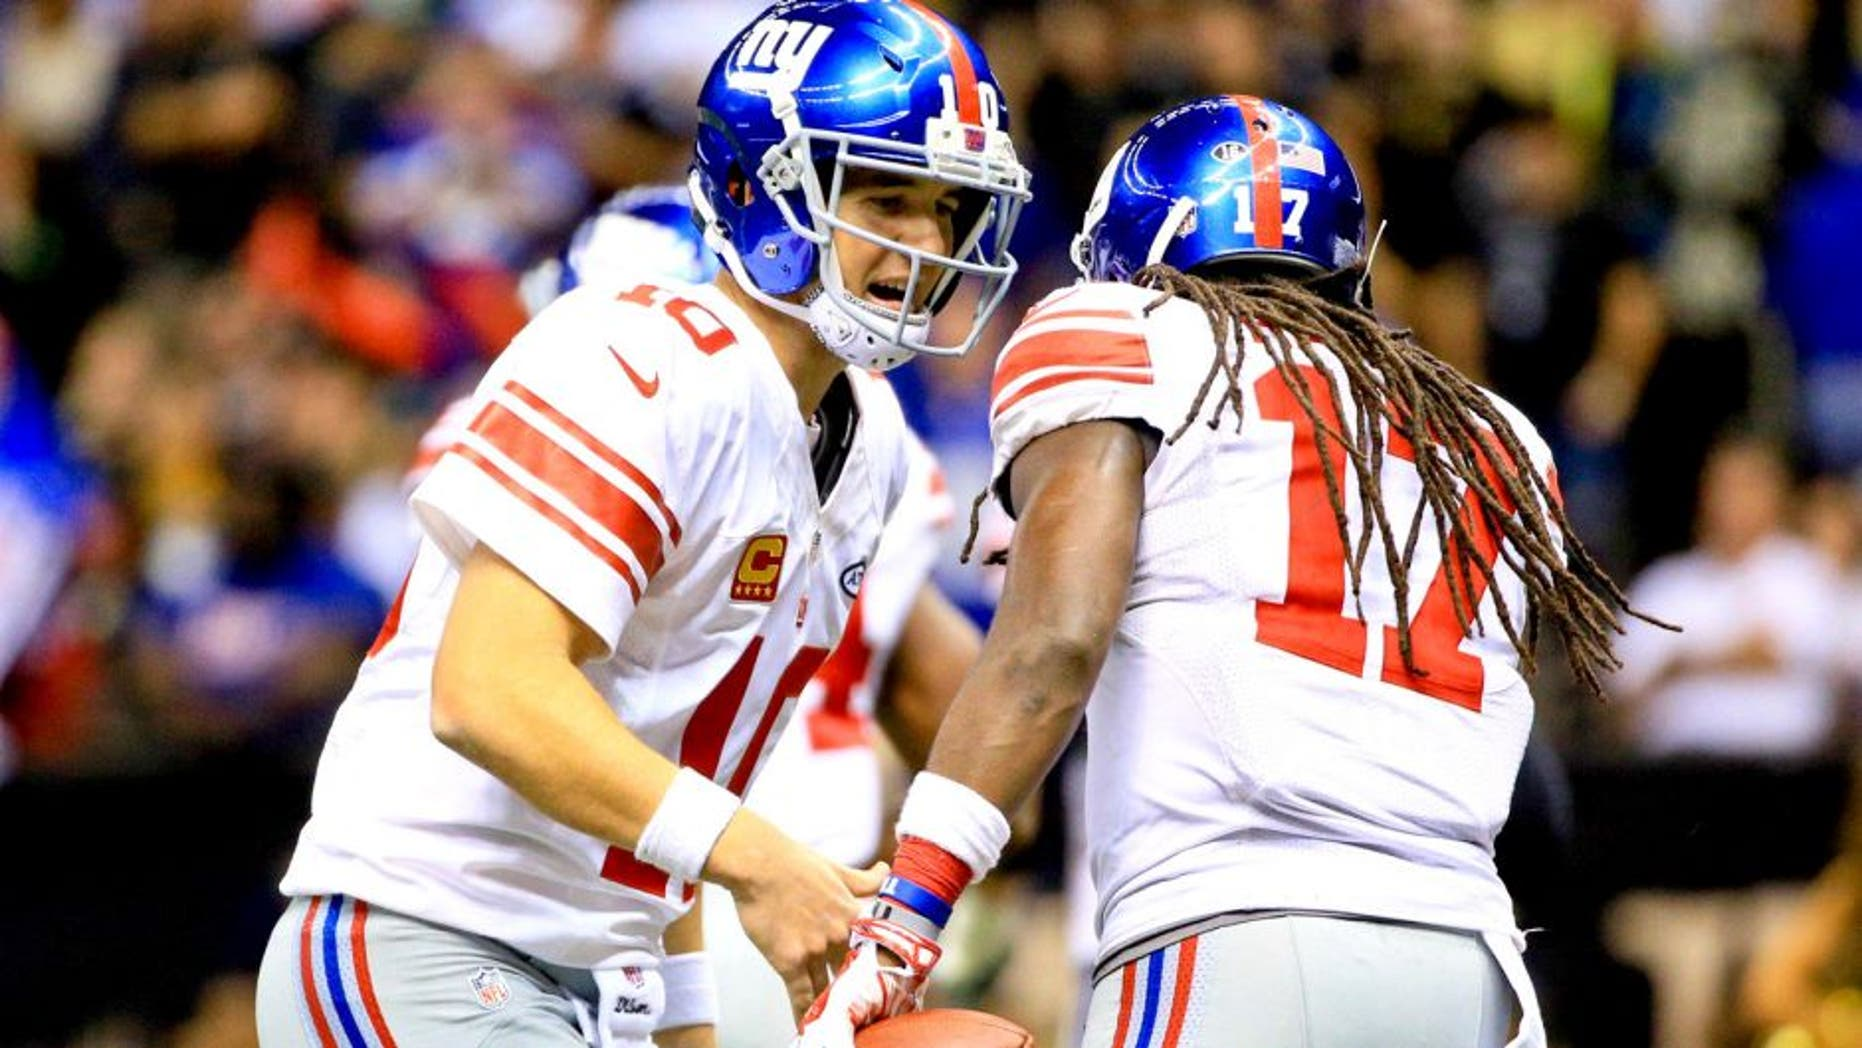 Nov 1, 2015; New Orleans, LA, USA; New York Giants quarterback Eli Manning (10) celebrates with wide receiver Dwayne Harris (17) after a tochdown during the fourth quarter of a game against the New Orleans Saints at the Mercedes-Benz Superdome. The Saints defeated the Giants 52-49. Mandatory Credit: Derick E. Hingle-USA TODAY Sports